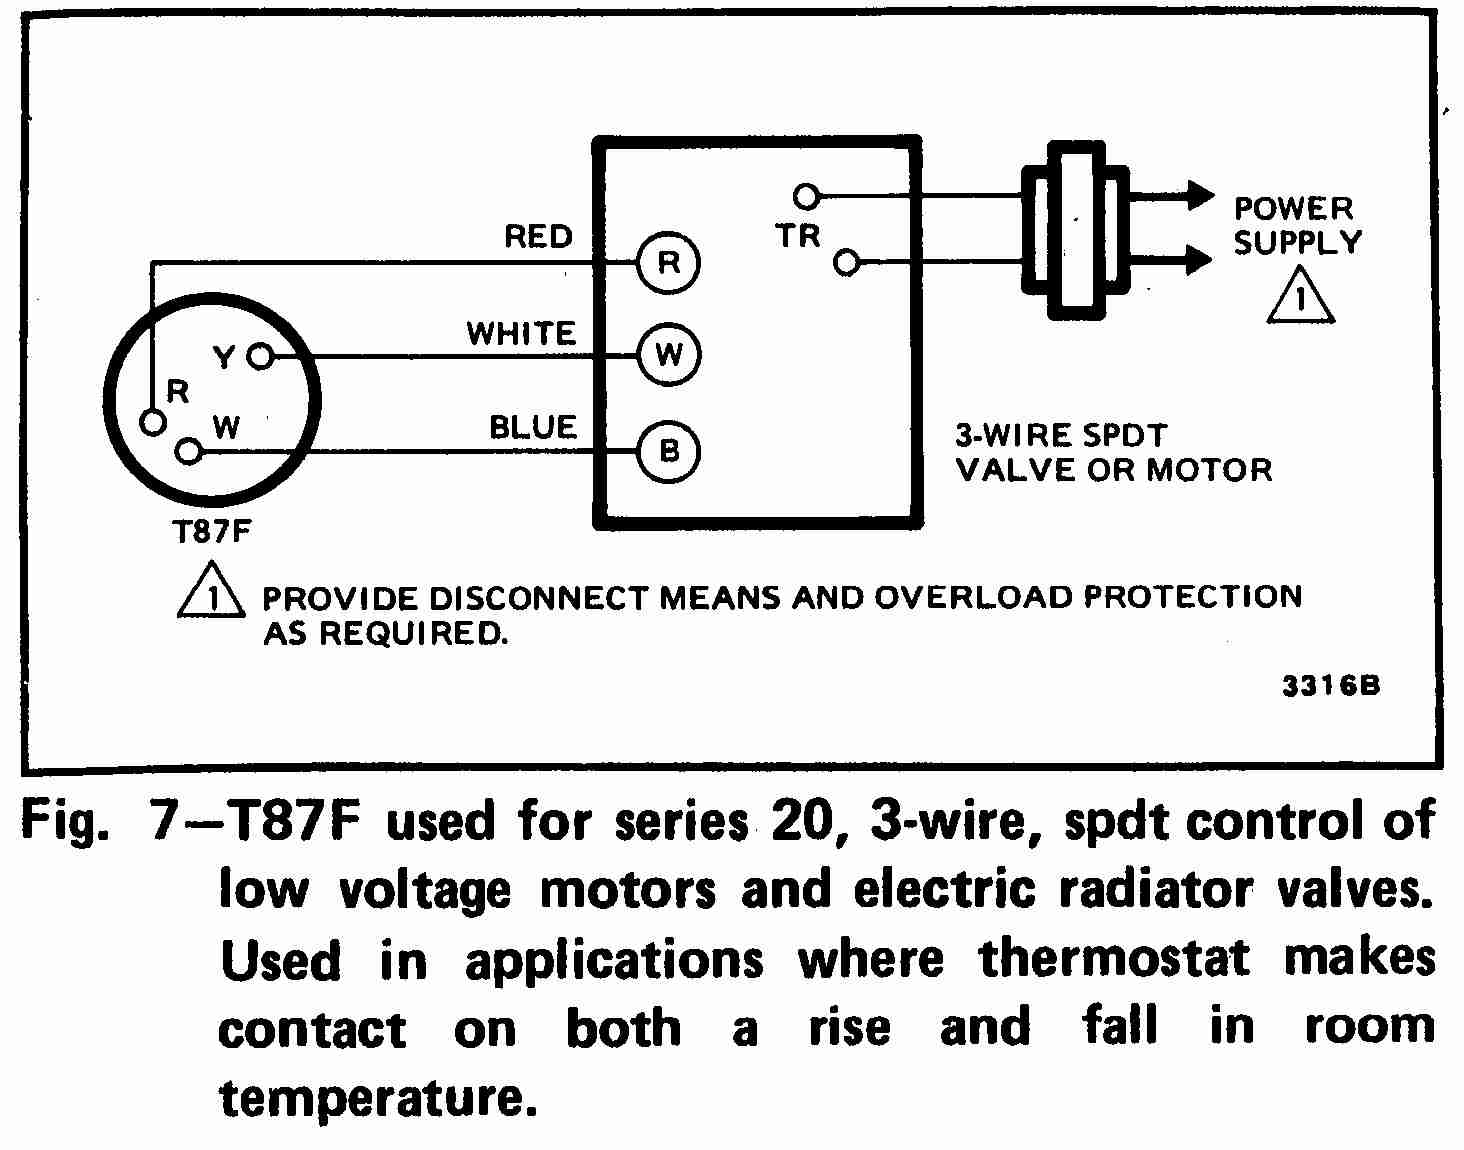 TT_T87F_0002_3W2_DJF room thermostat wiring diagrams for hvac systems Heat Only Thermostat Wiring Diagram at panicattacktreatment.co